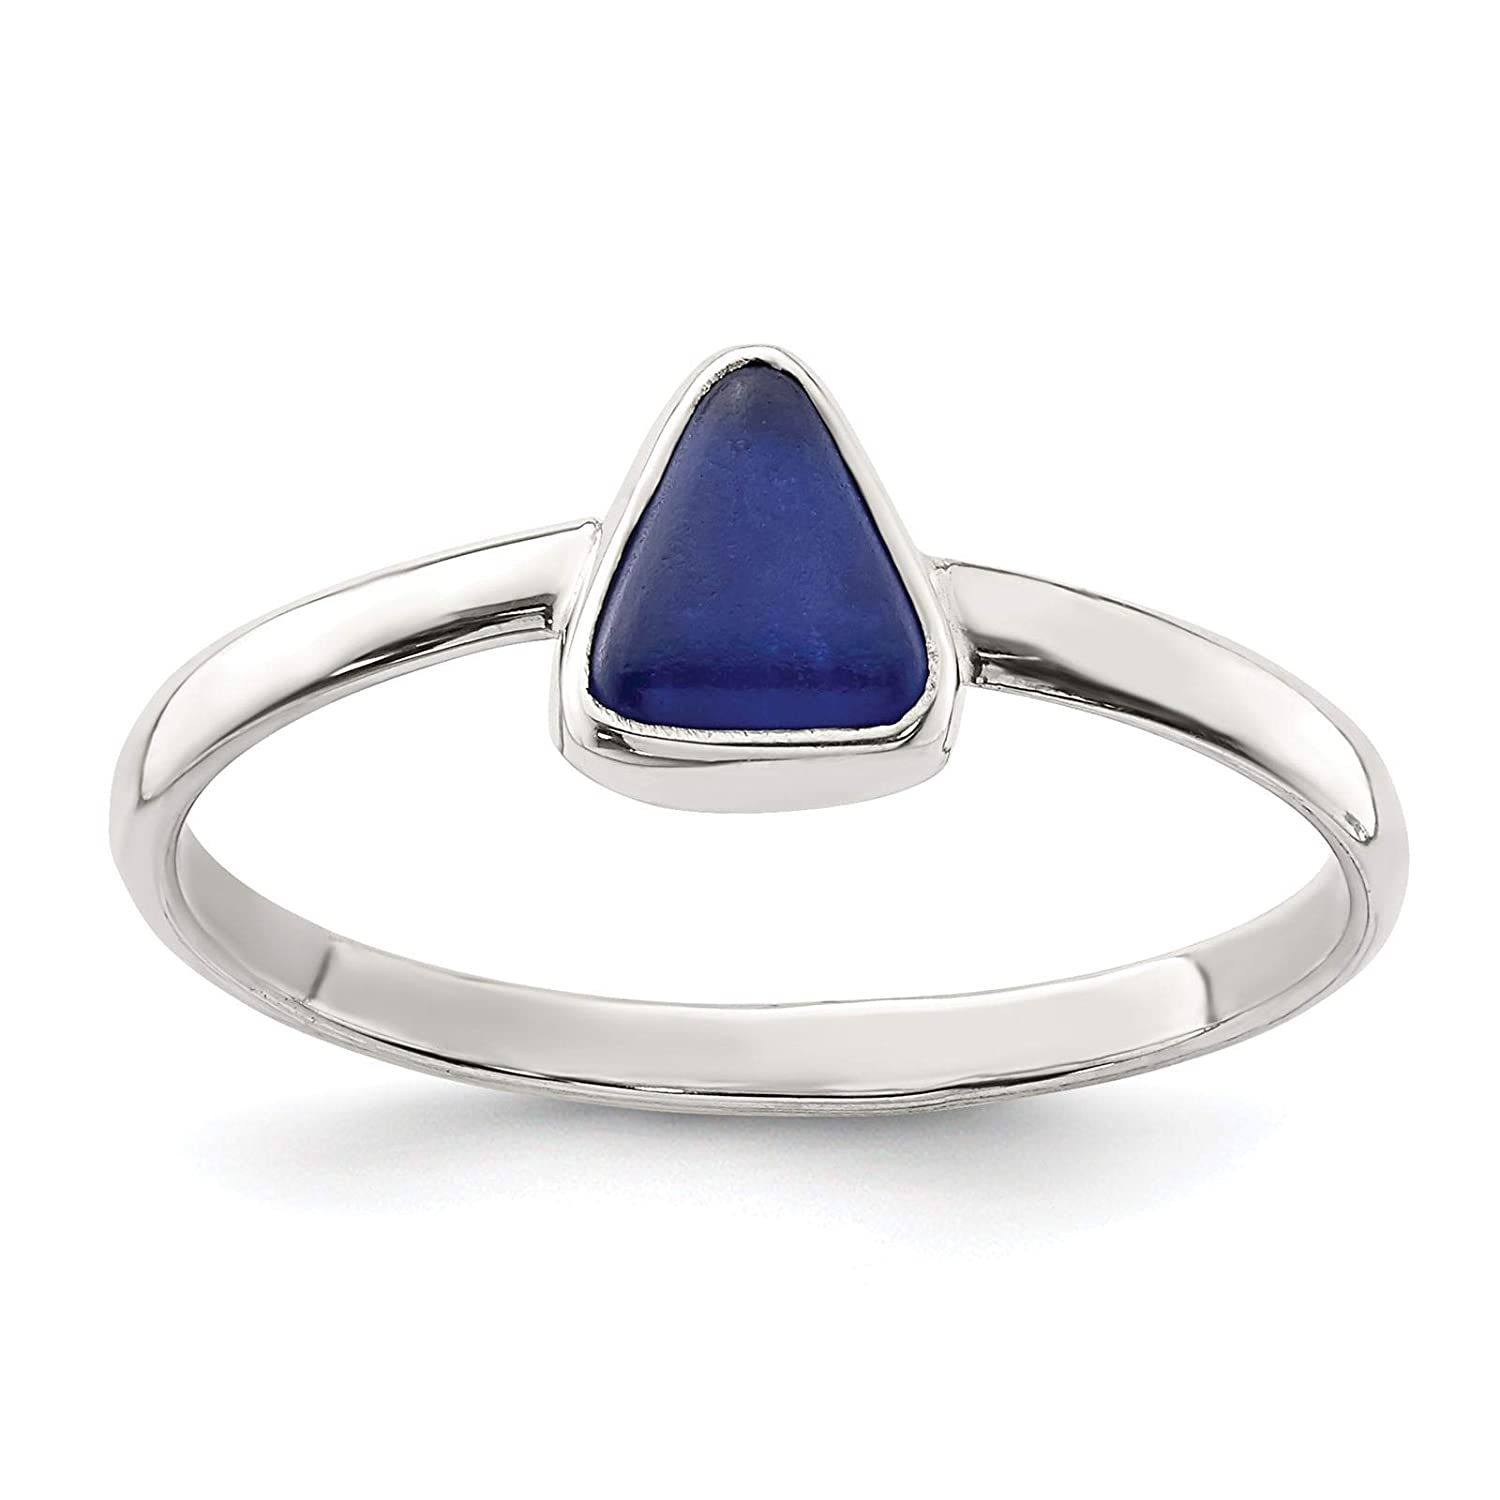 925 Sterling Silver Polished Blue Sea Glass Triangle Ring Size 6-8